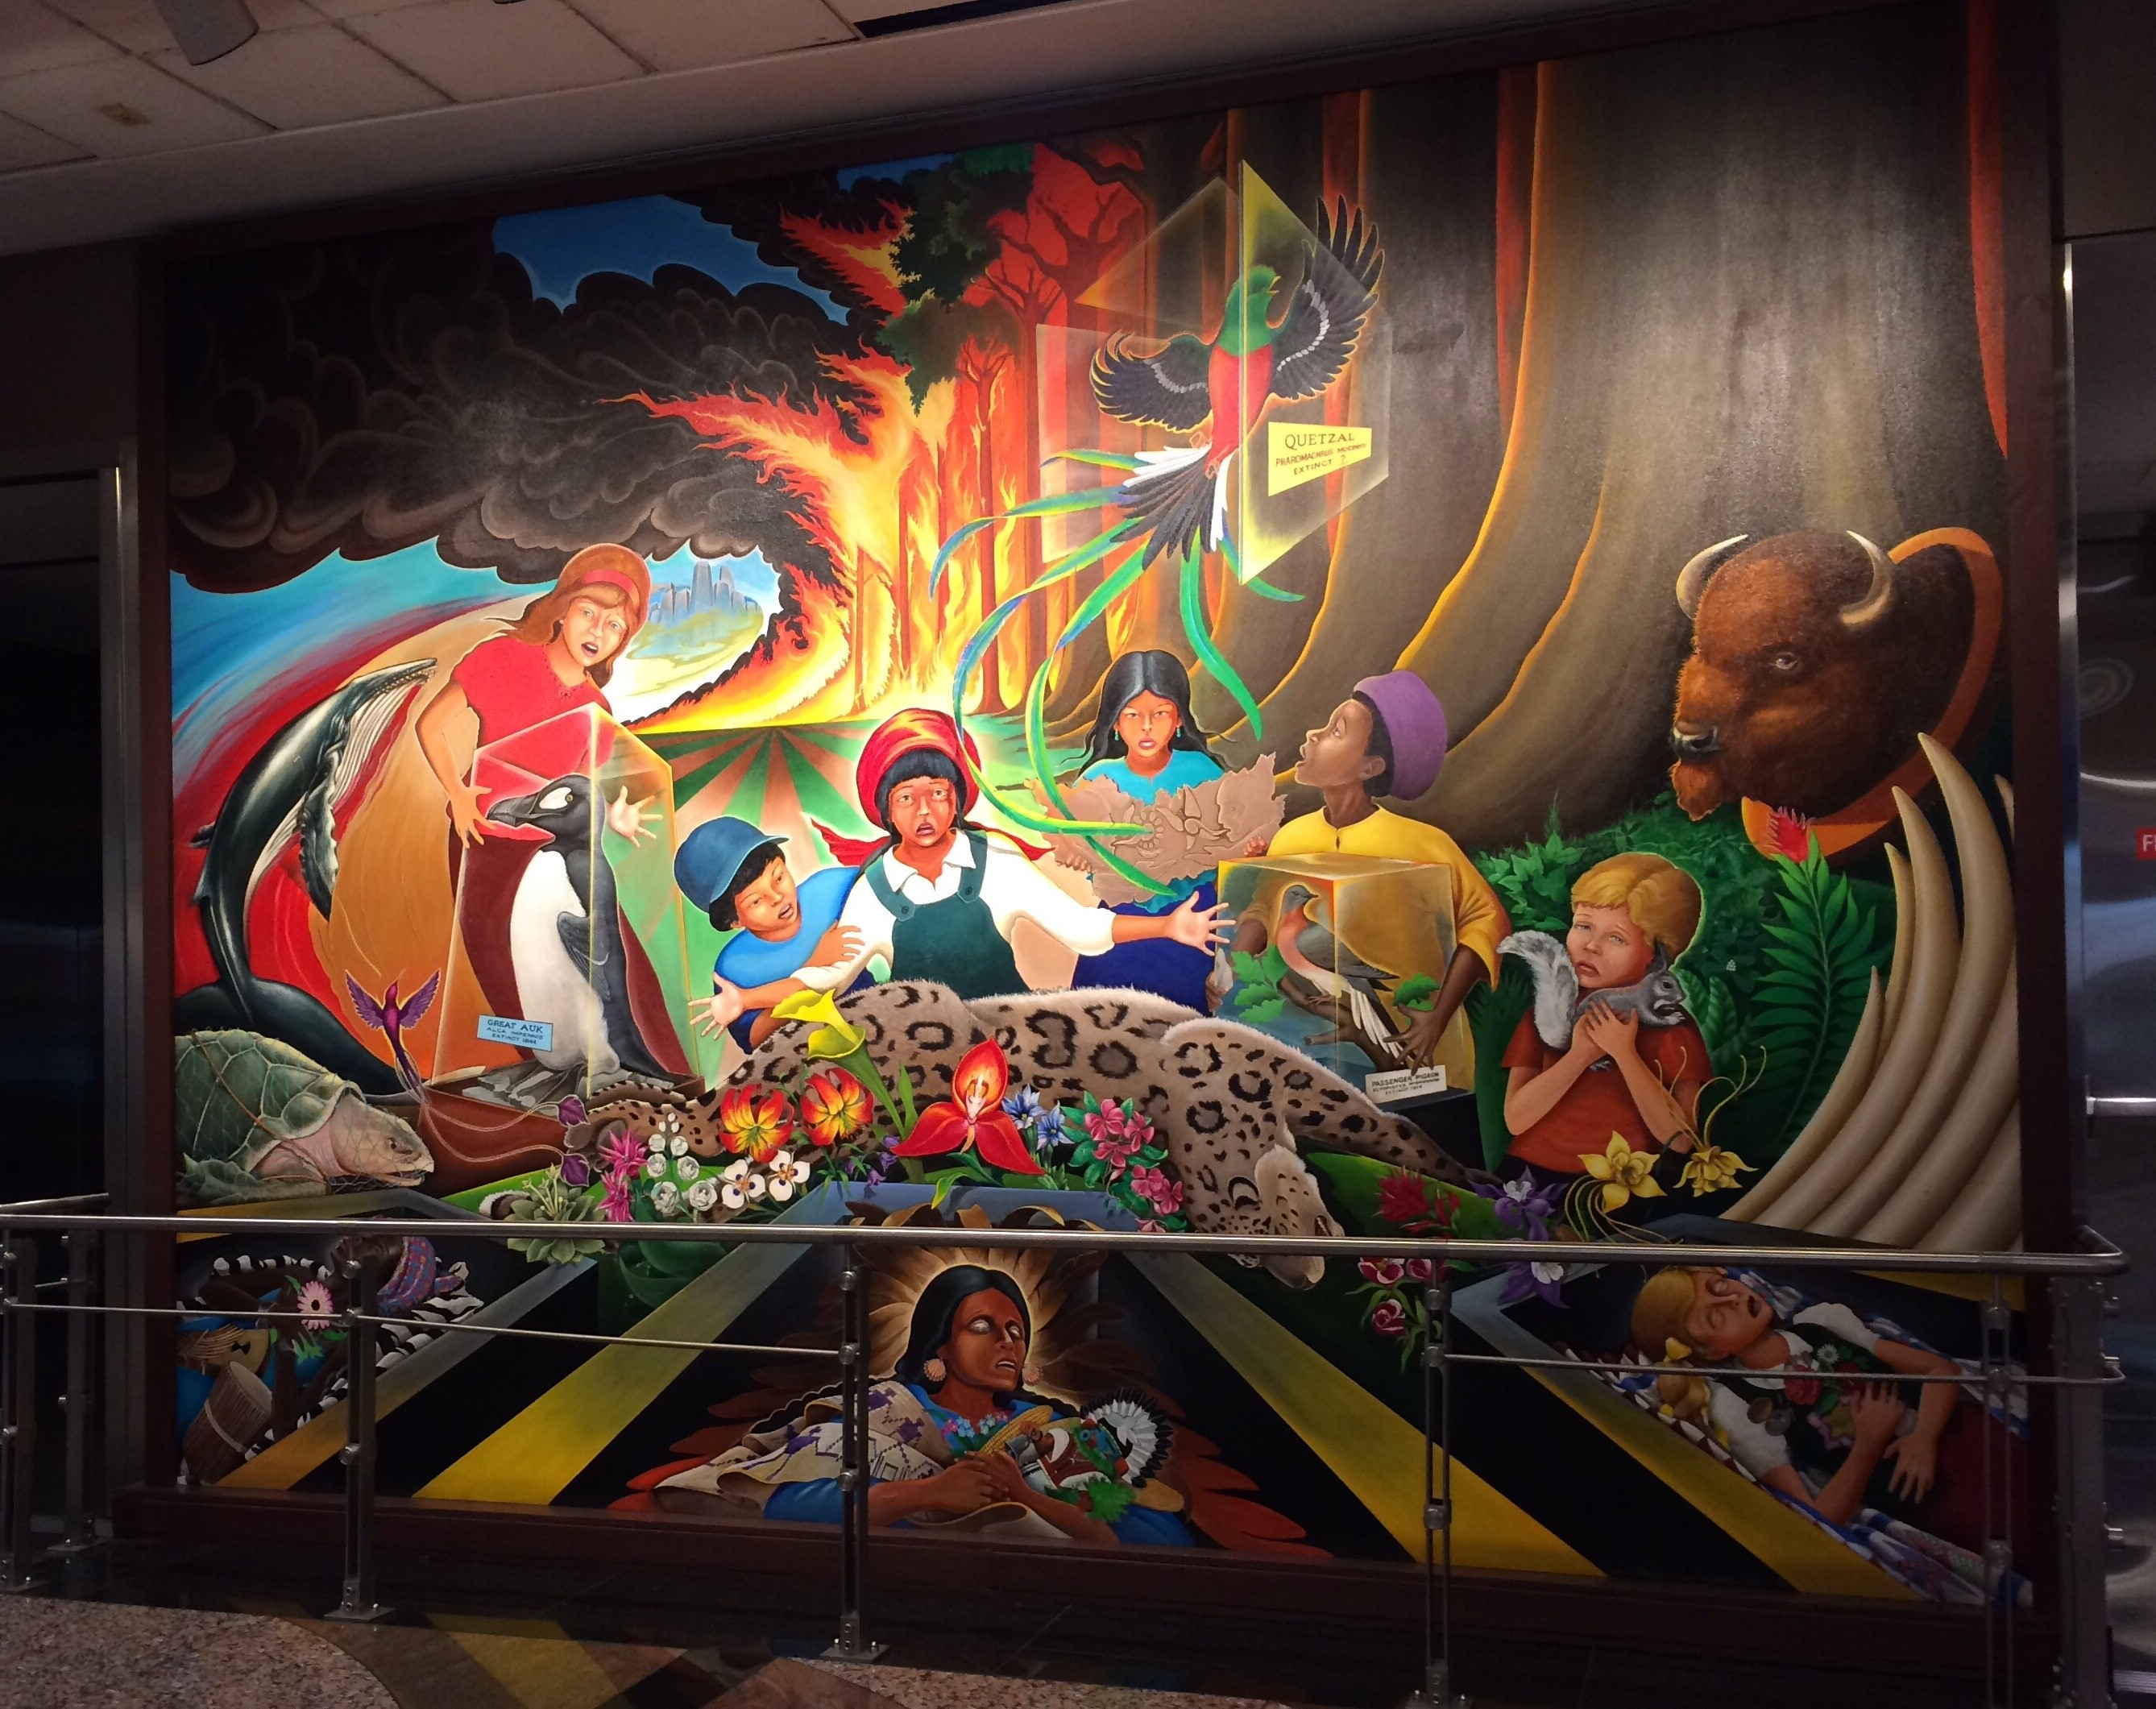 Eerie murals at the denver airport have conspiracy for Mural in denver airport